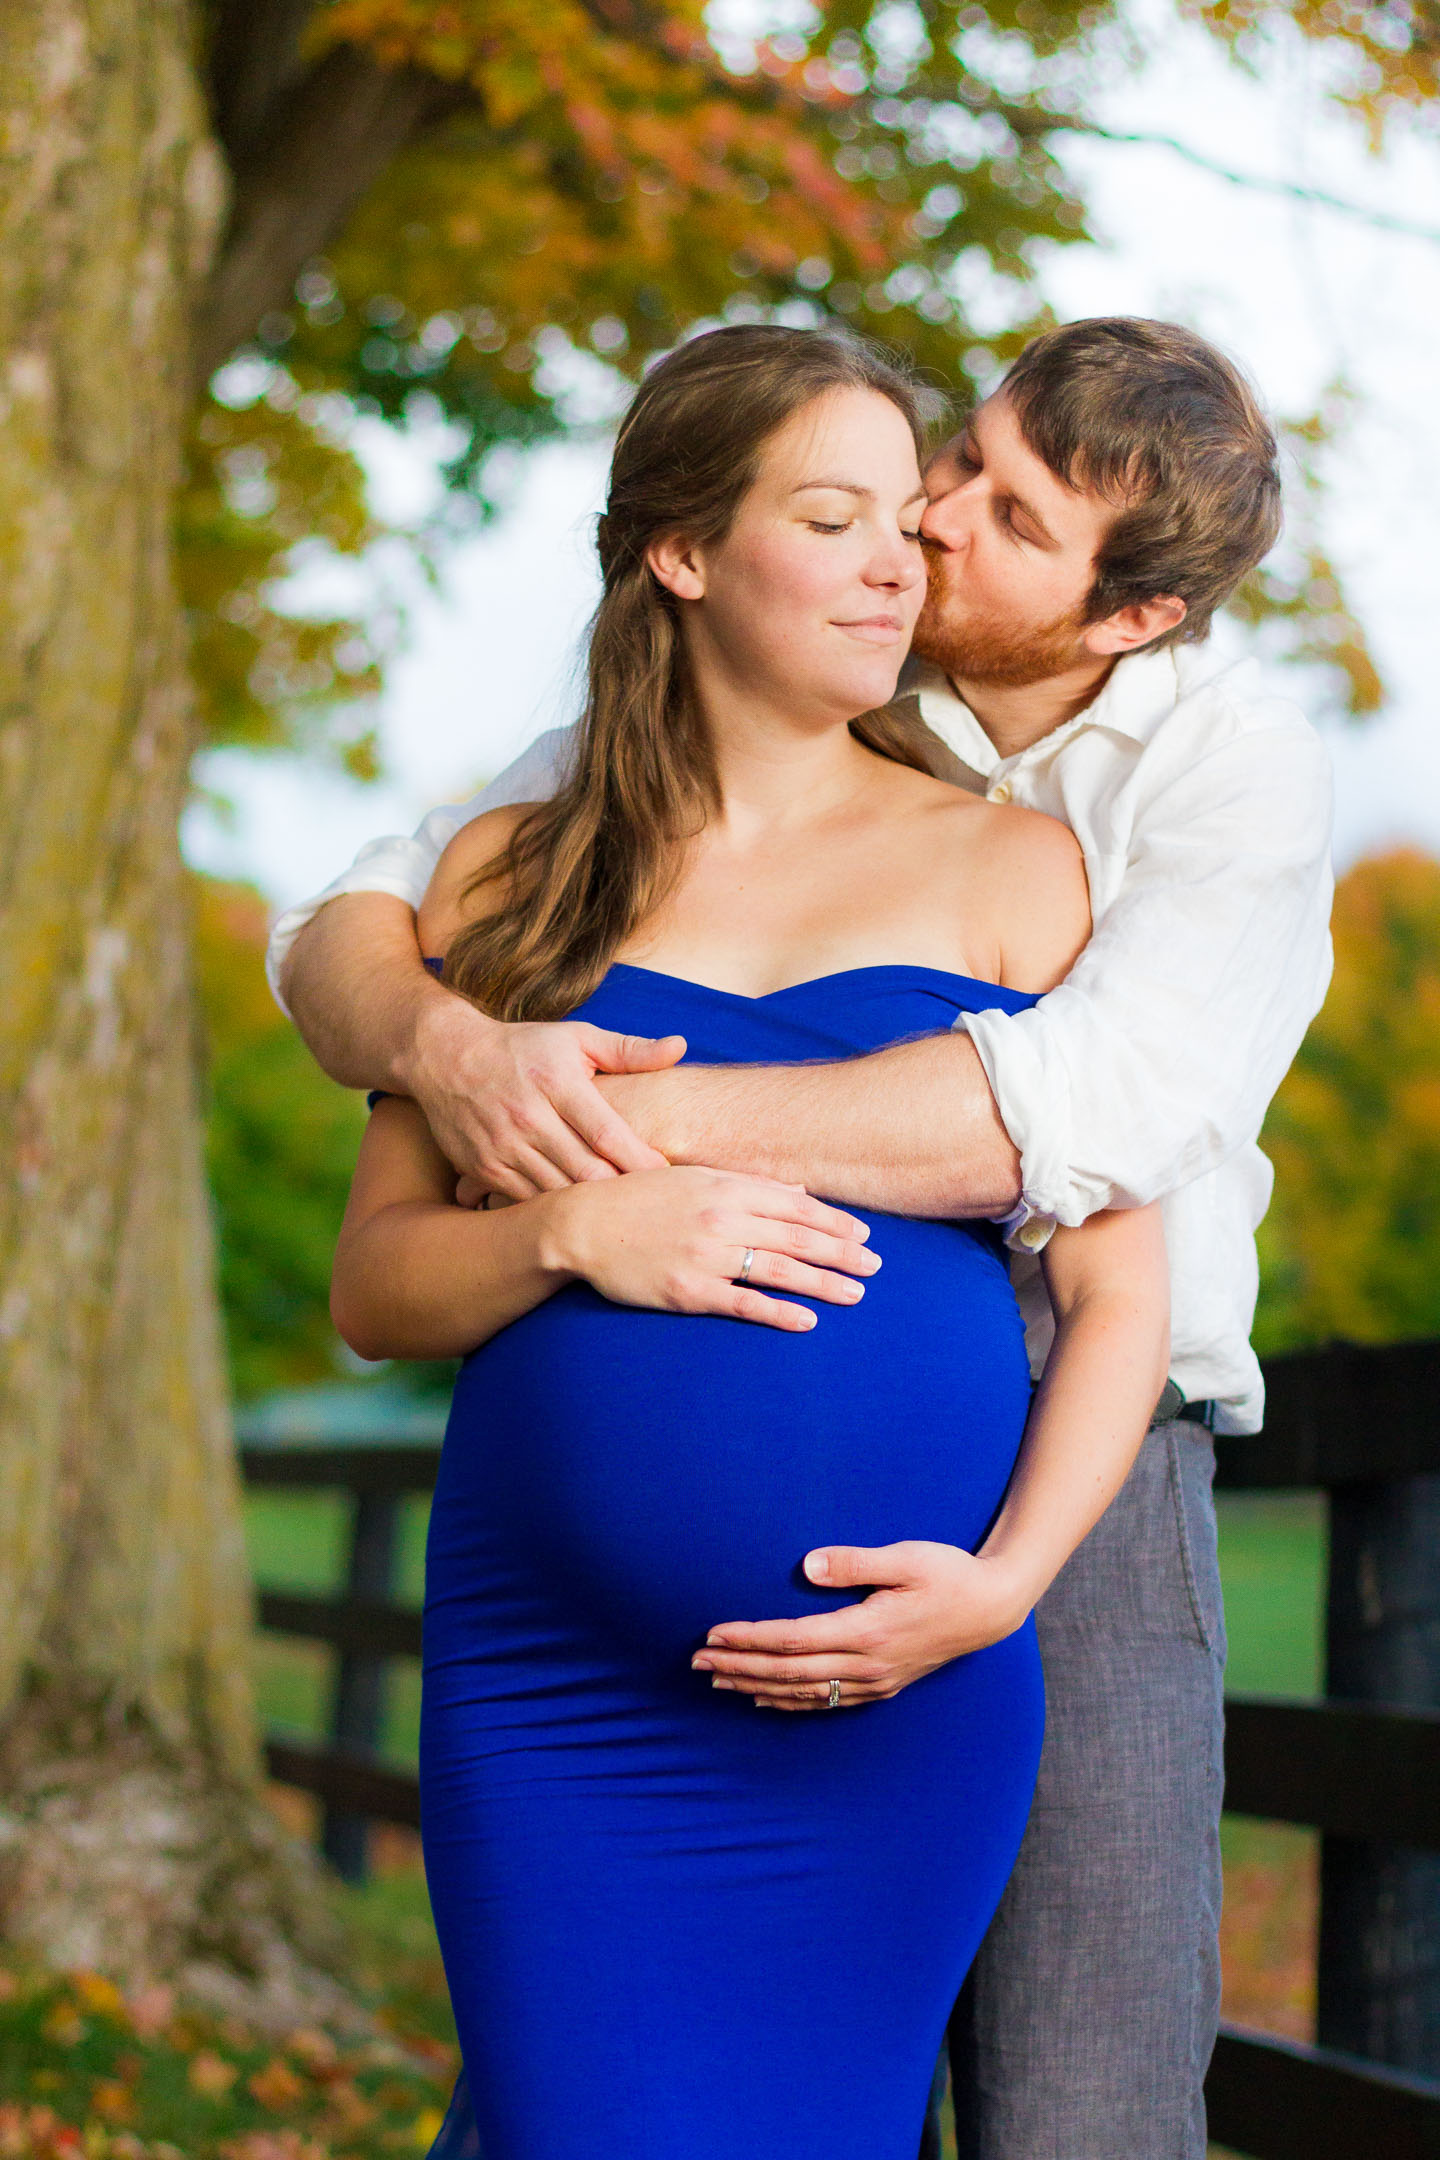 A maternity portrait of a woman and her husband in Orangeville, Ontario